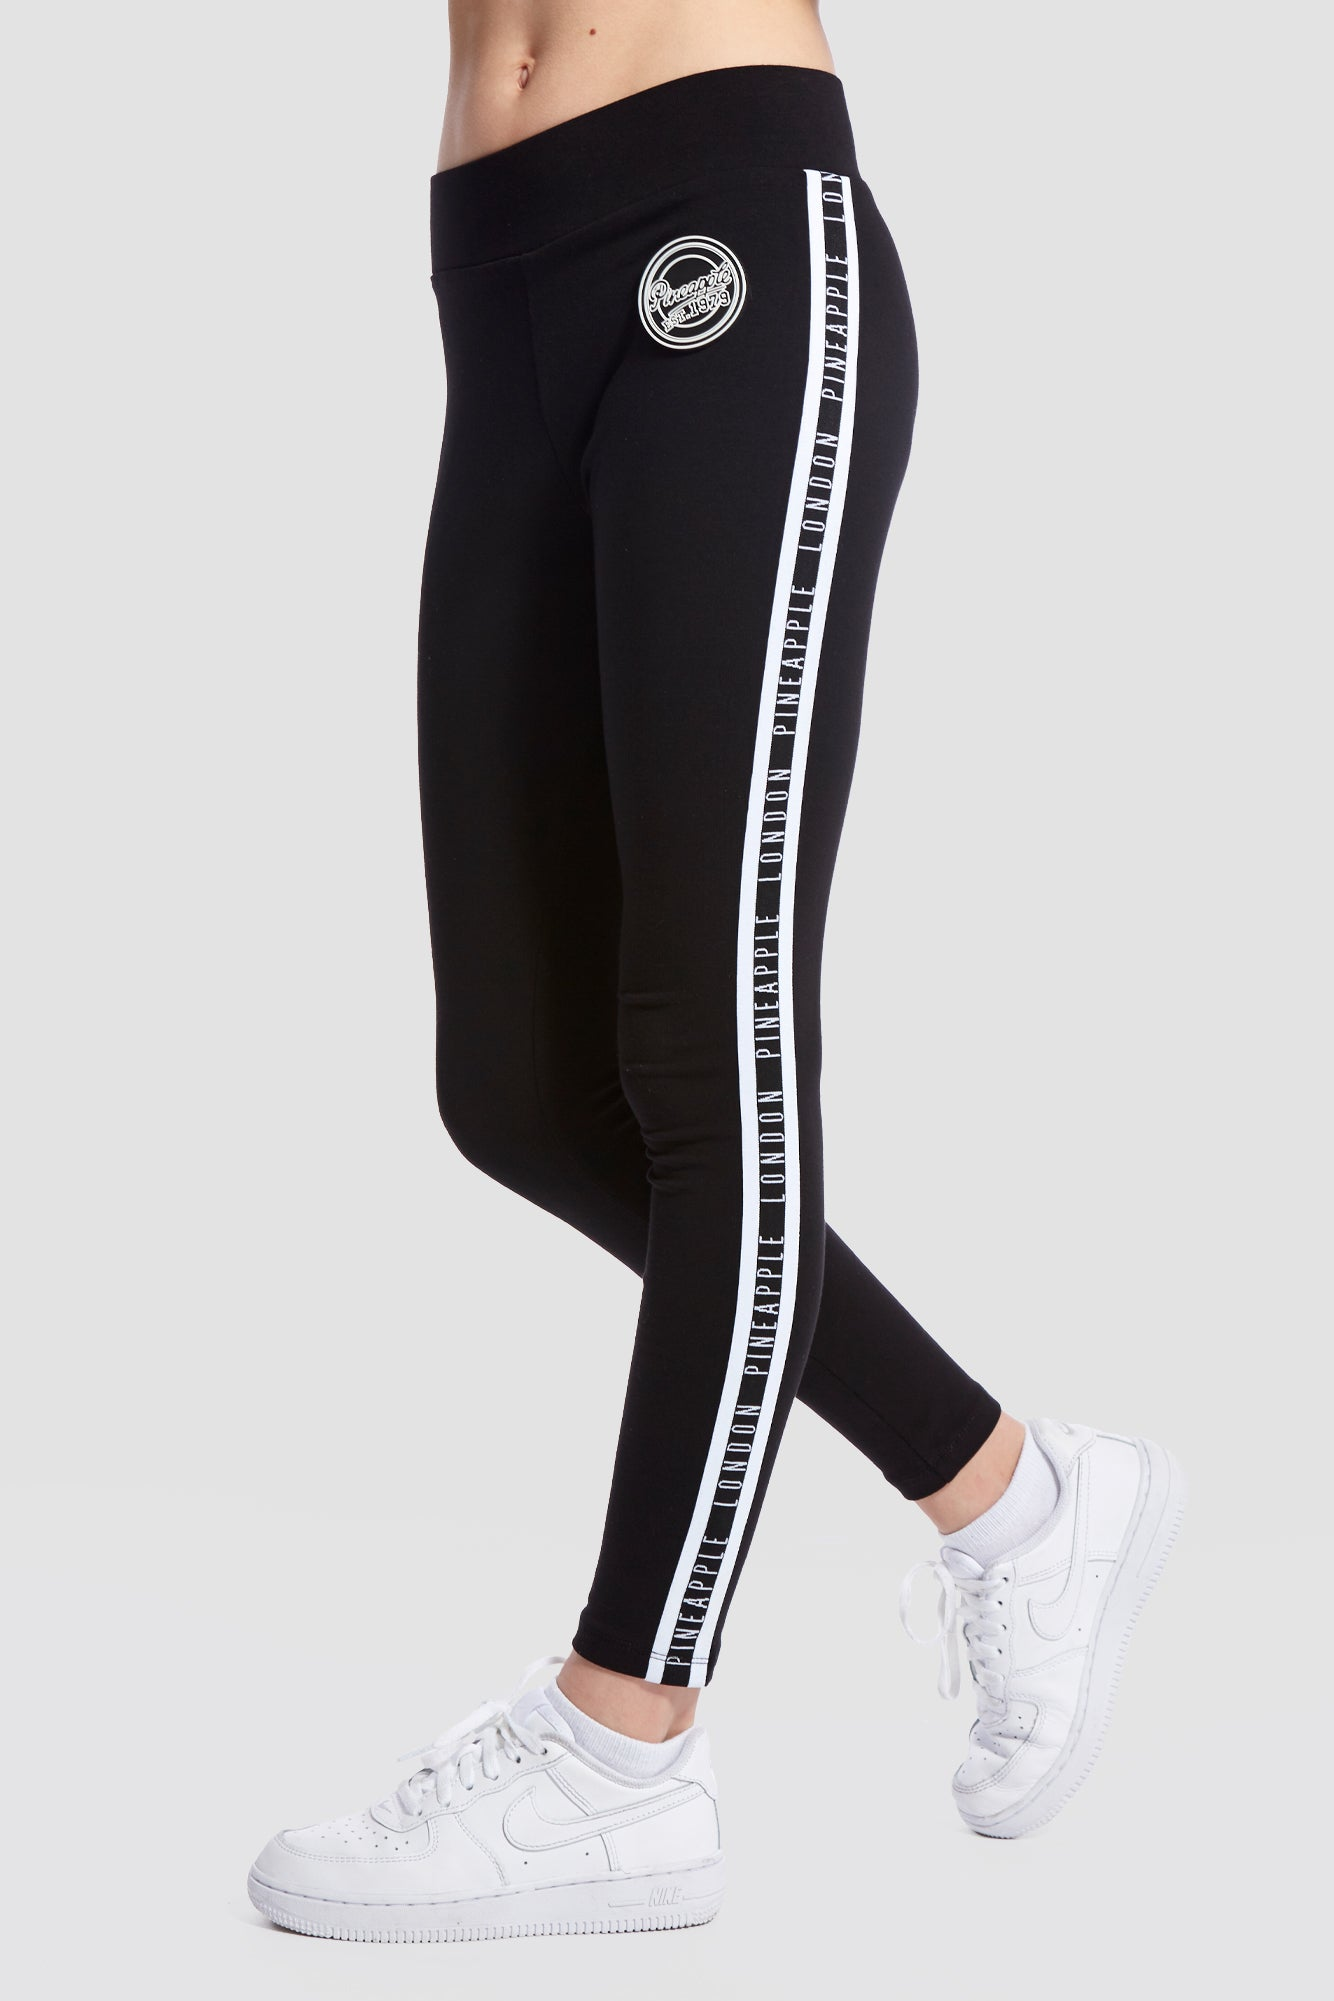 Stripe Jacquard Leggings